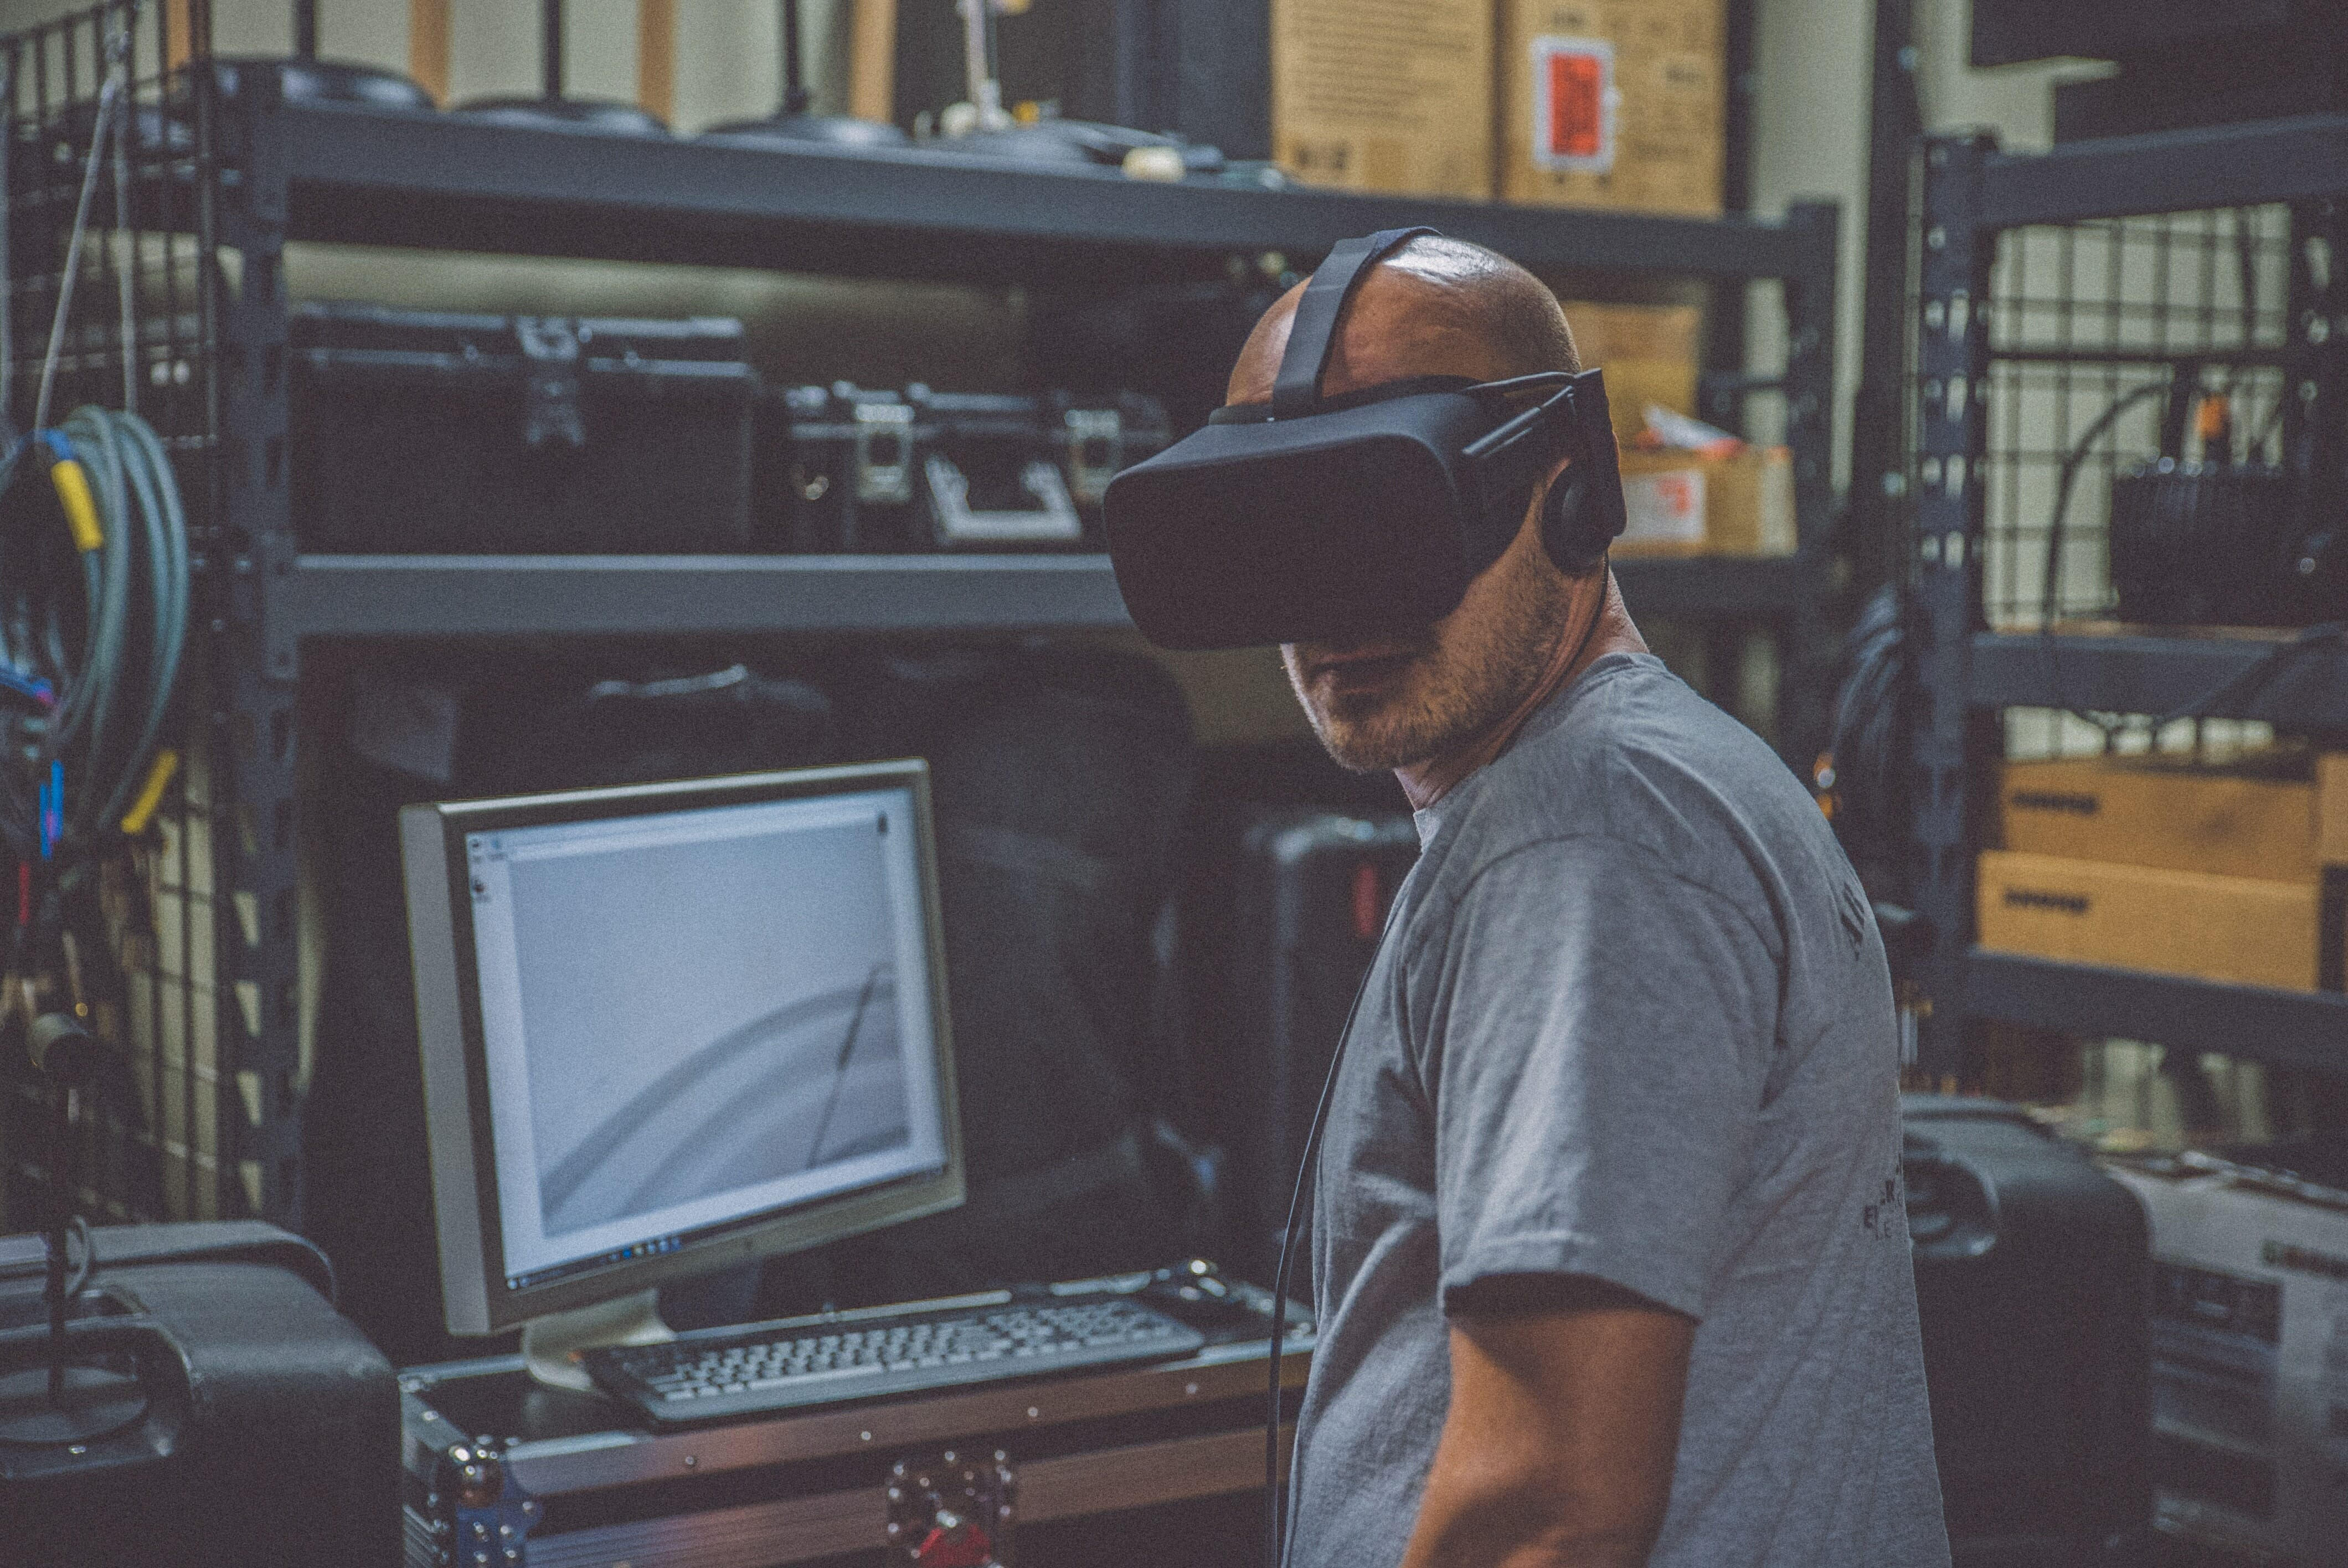 Benefits of using virtual reality for employee training purposes